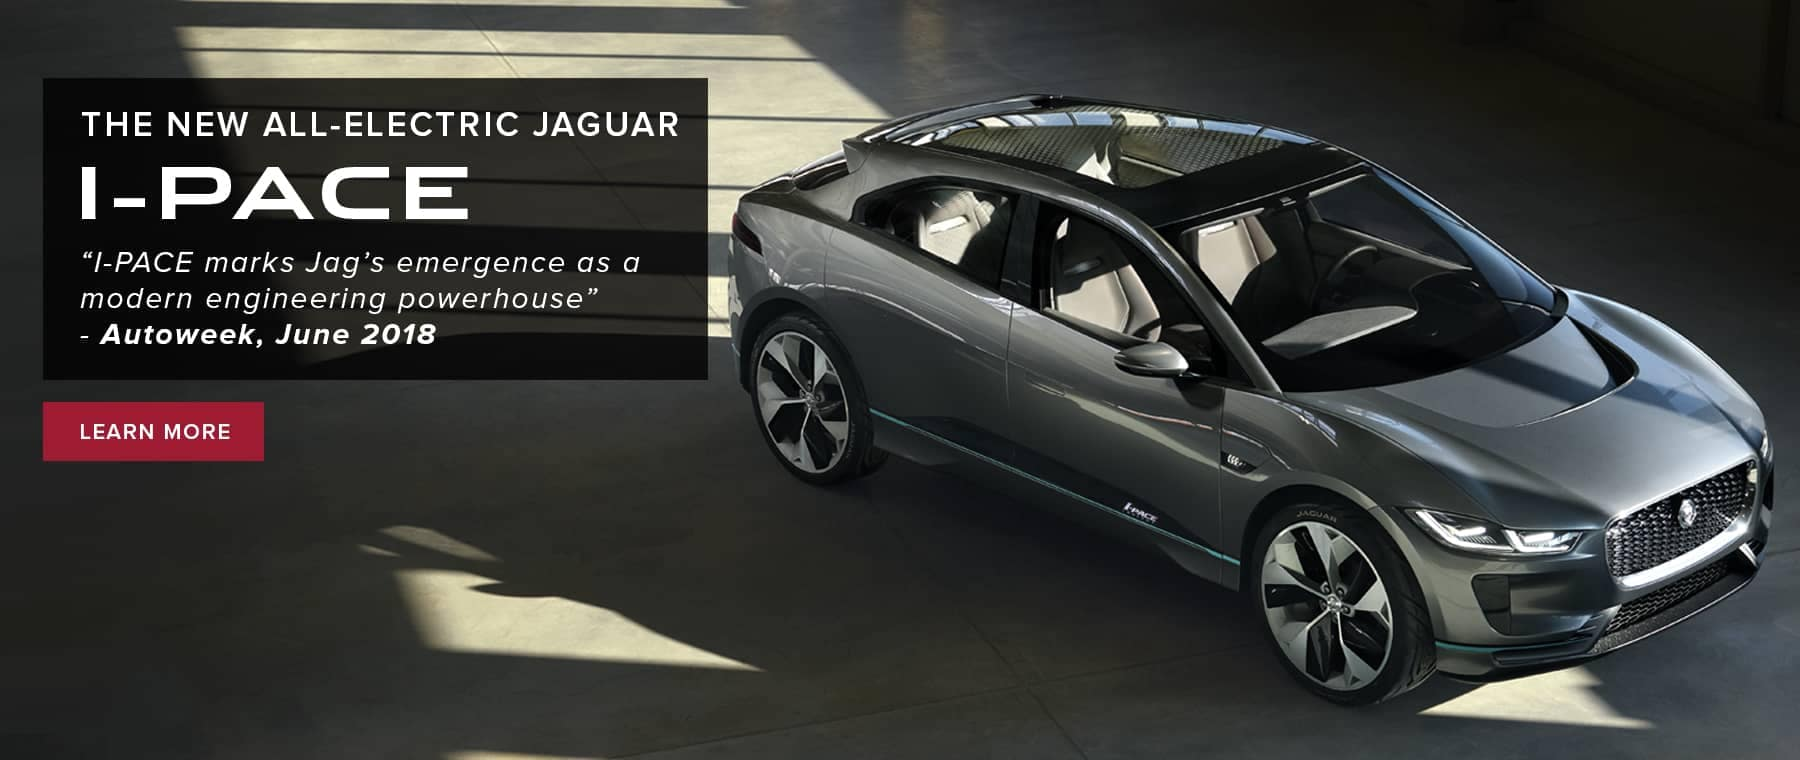 I-PACE_1800x760